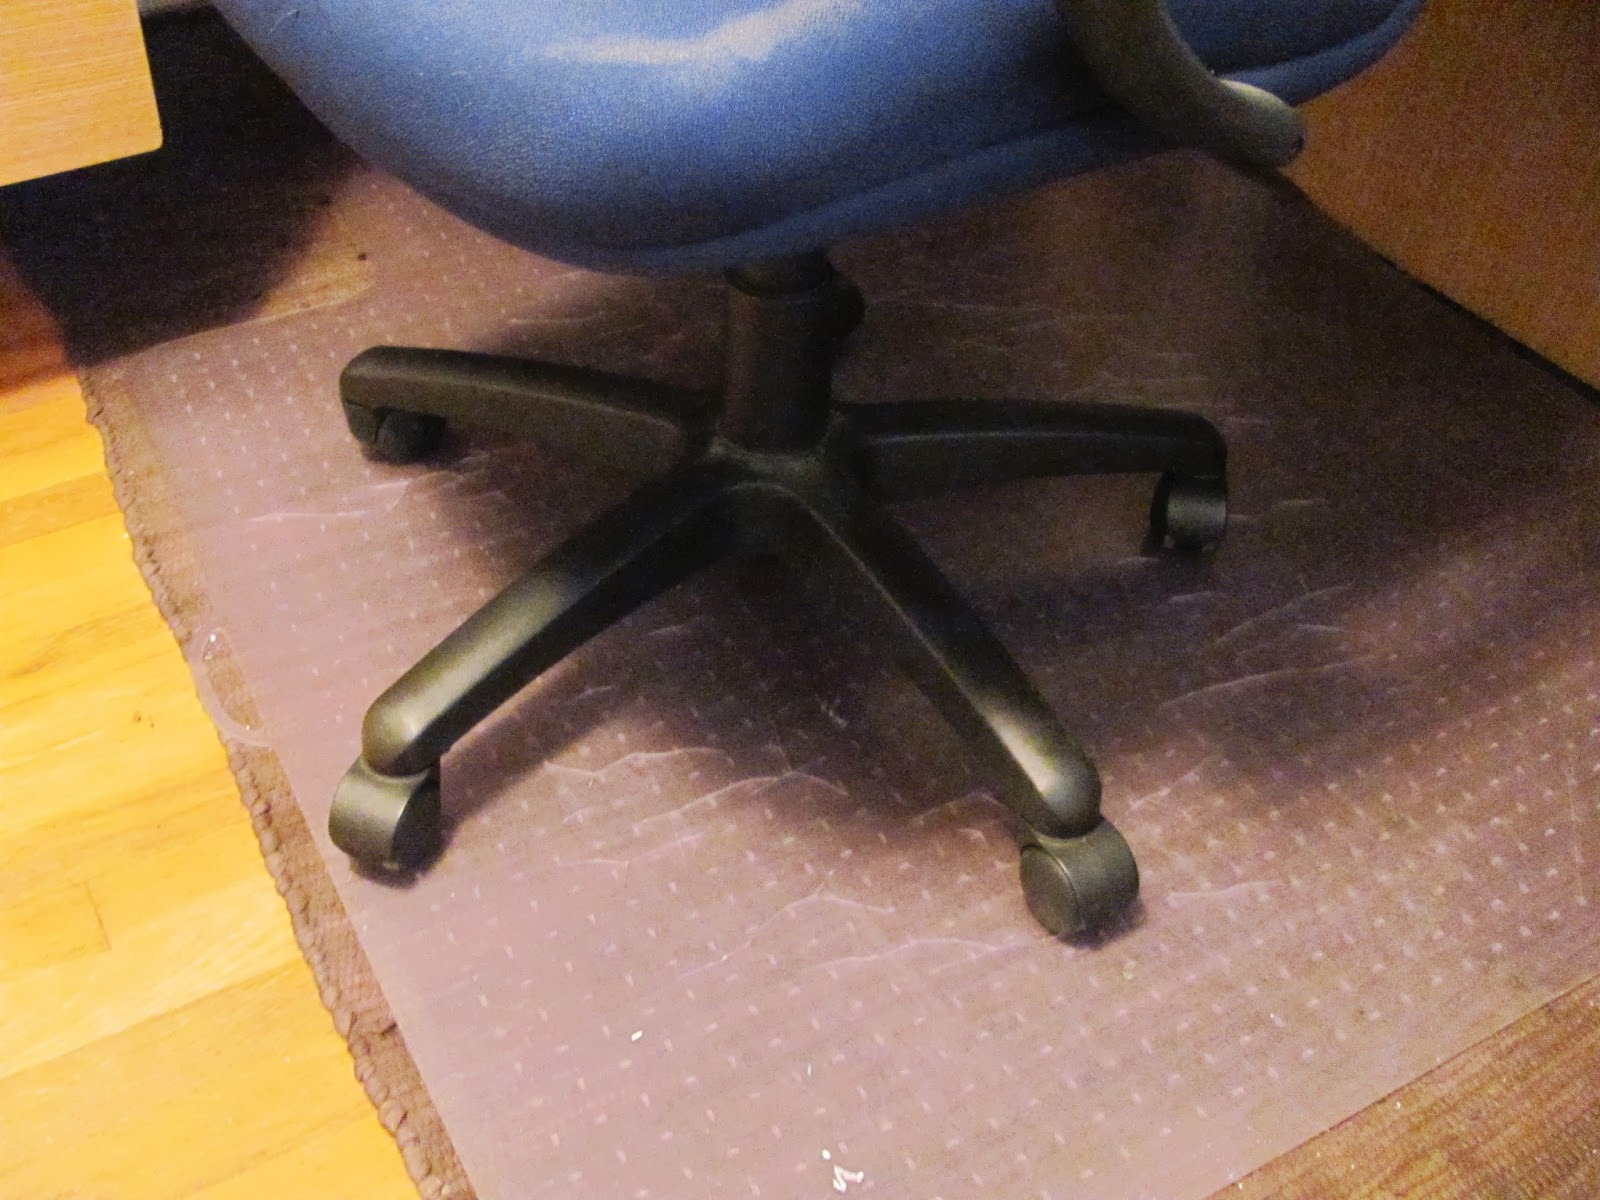 The plastic floor cover has some cracks as the wheels of the computer chair rest upon it